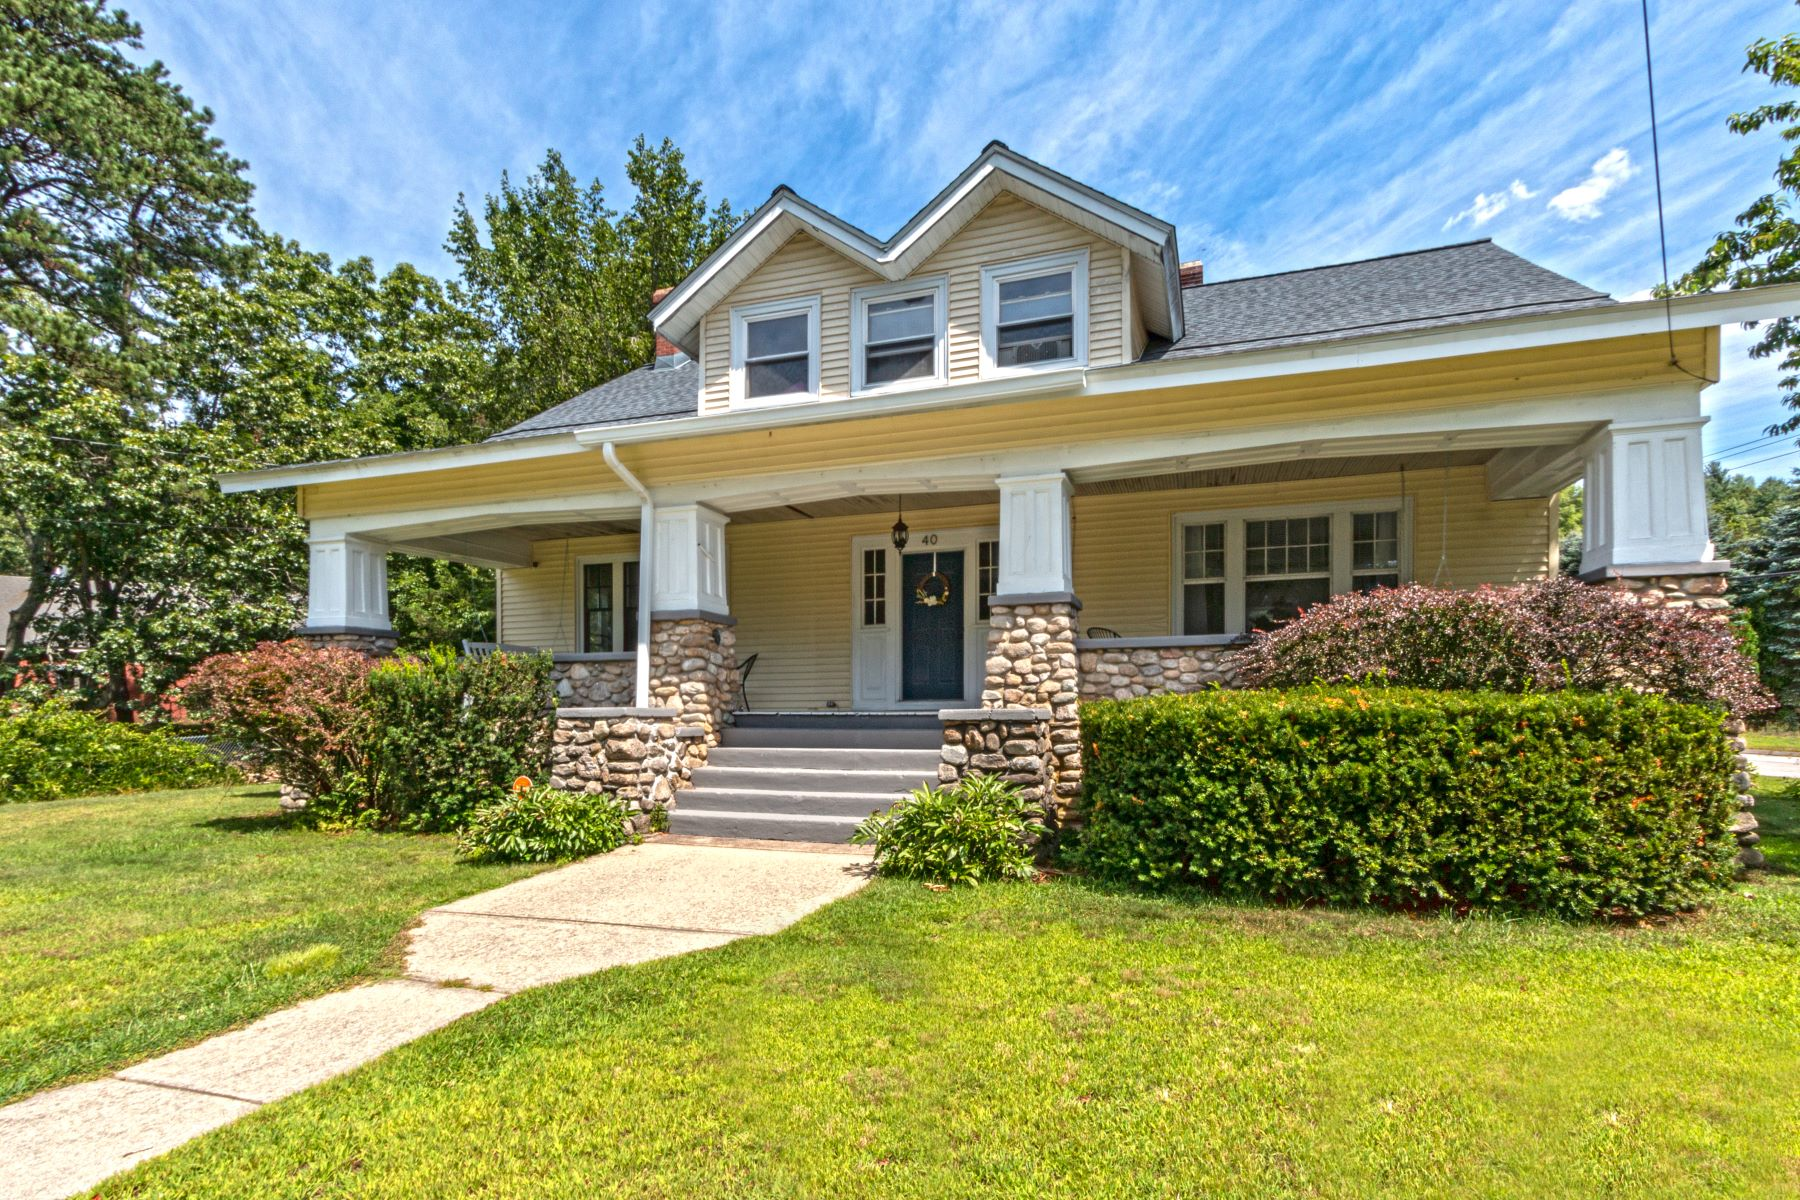 Single Family Homes for Sale at Completely Renovated Bungalow! 40 Main Street Sterling, Connecticut 06377 United States